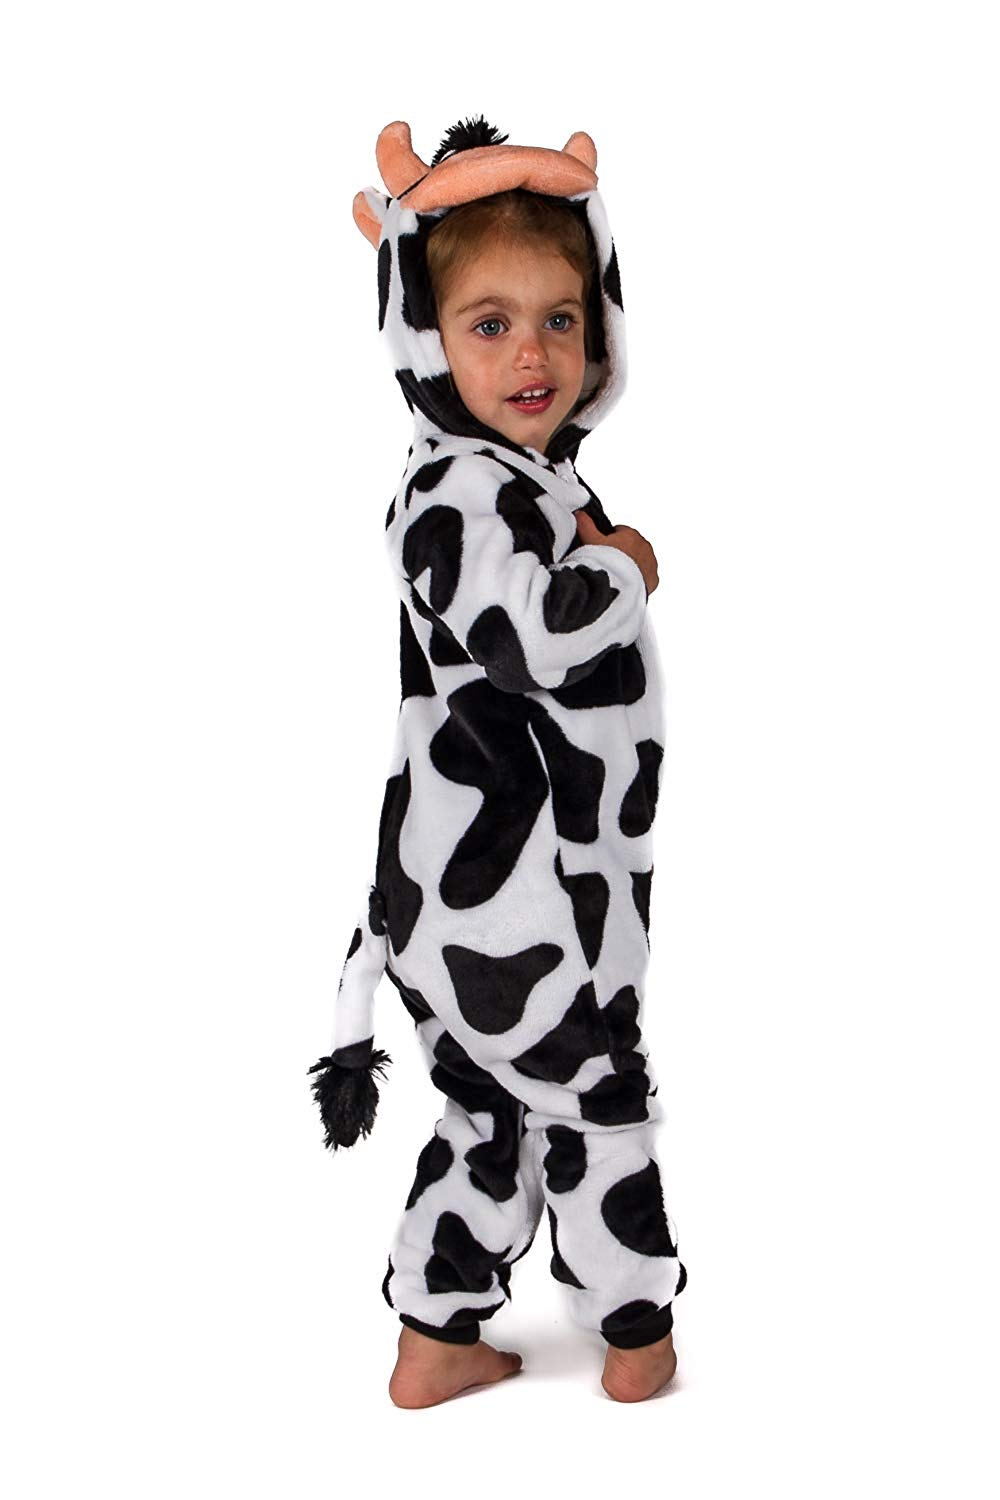 Jammers Baby Infant Toddler Onesie Animal Costume - Cow